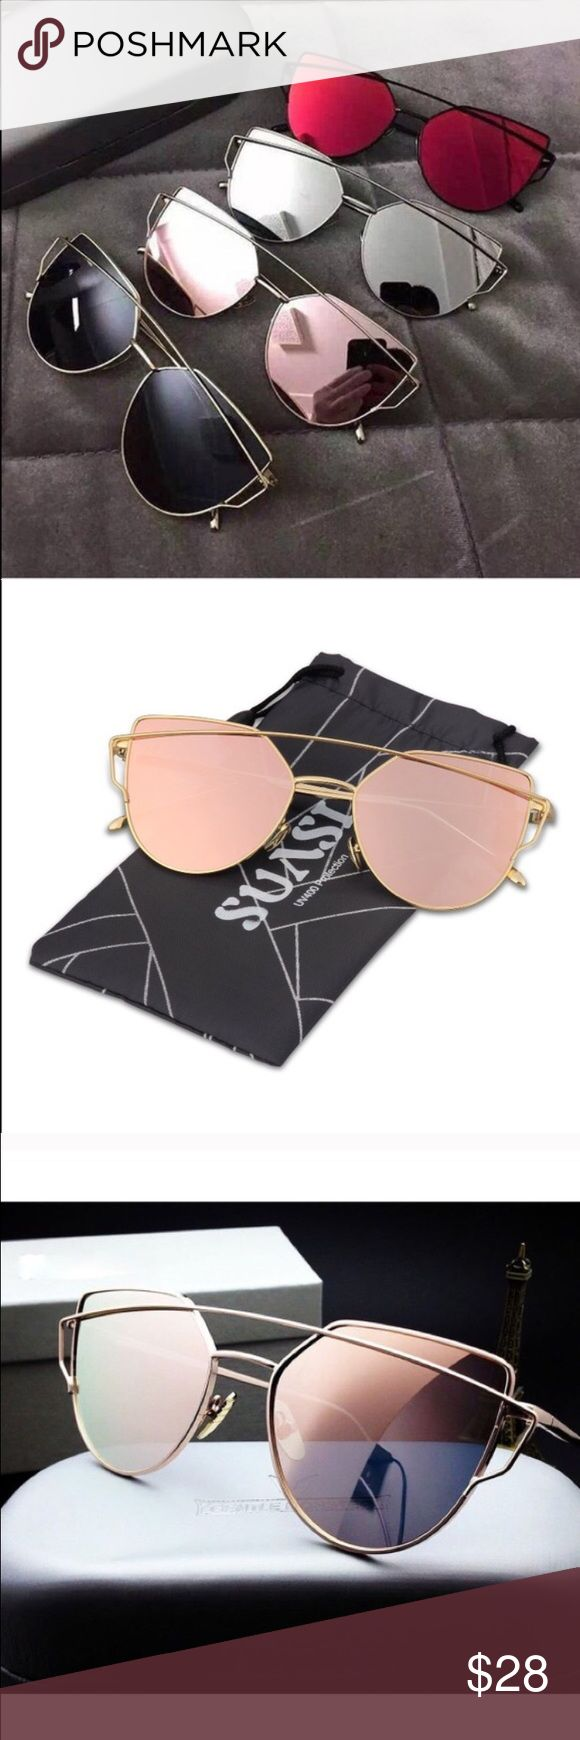 New Rose gold reflective mirrored sunglasses Brand new! I don't trade, price firm unless bundled the rims are gold and the lenses are rose gold Accessories Sunglasses